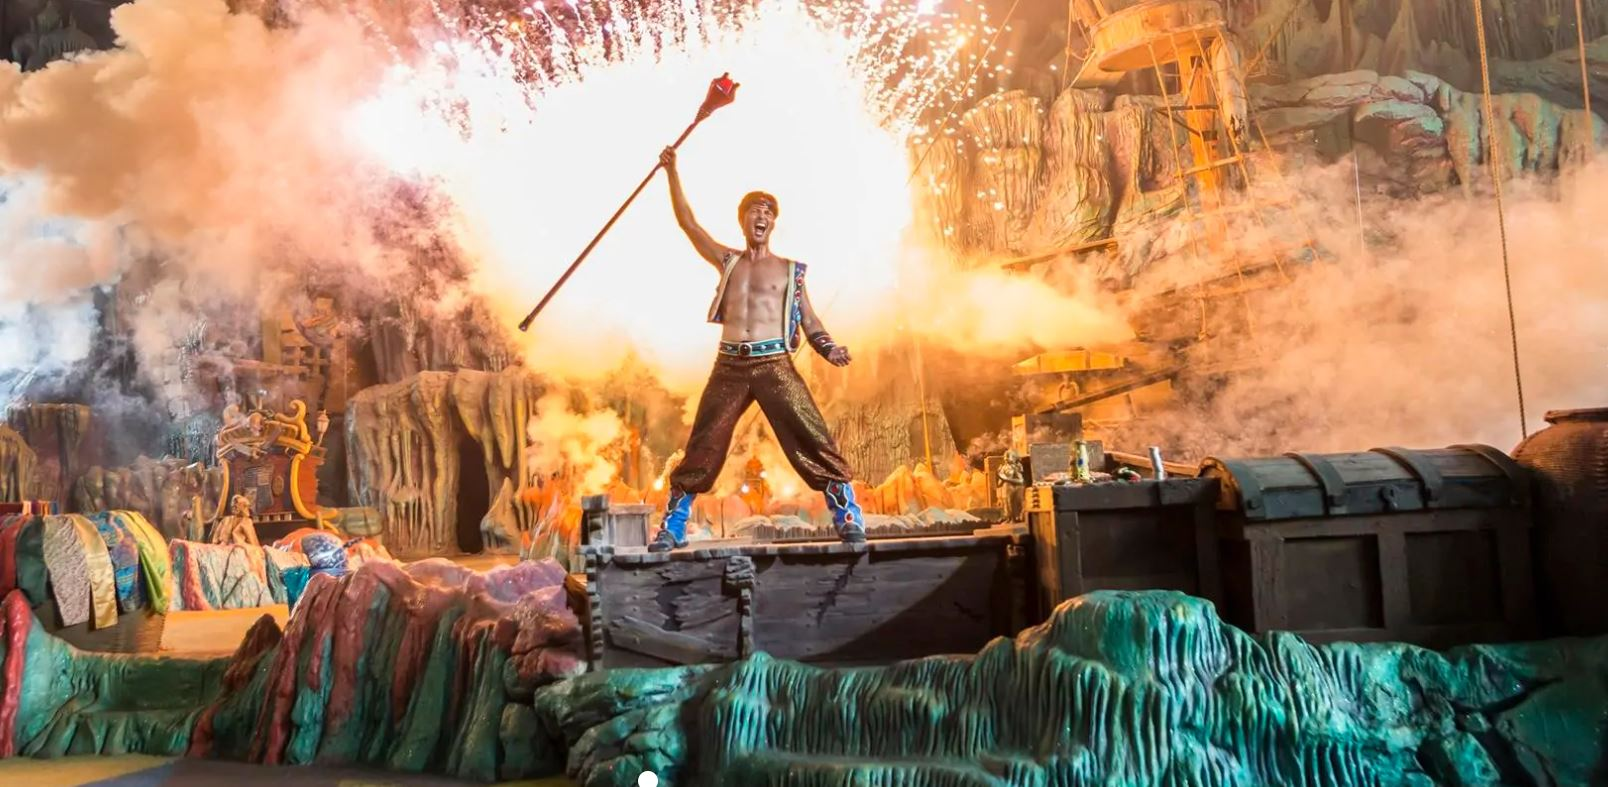 The Eighth Voyage of Sindbad closing at Universal Orlando